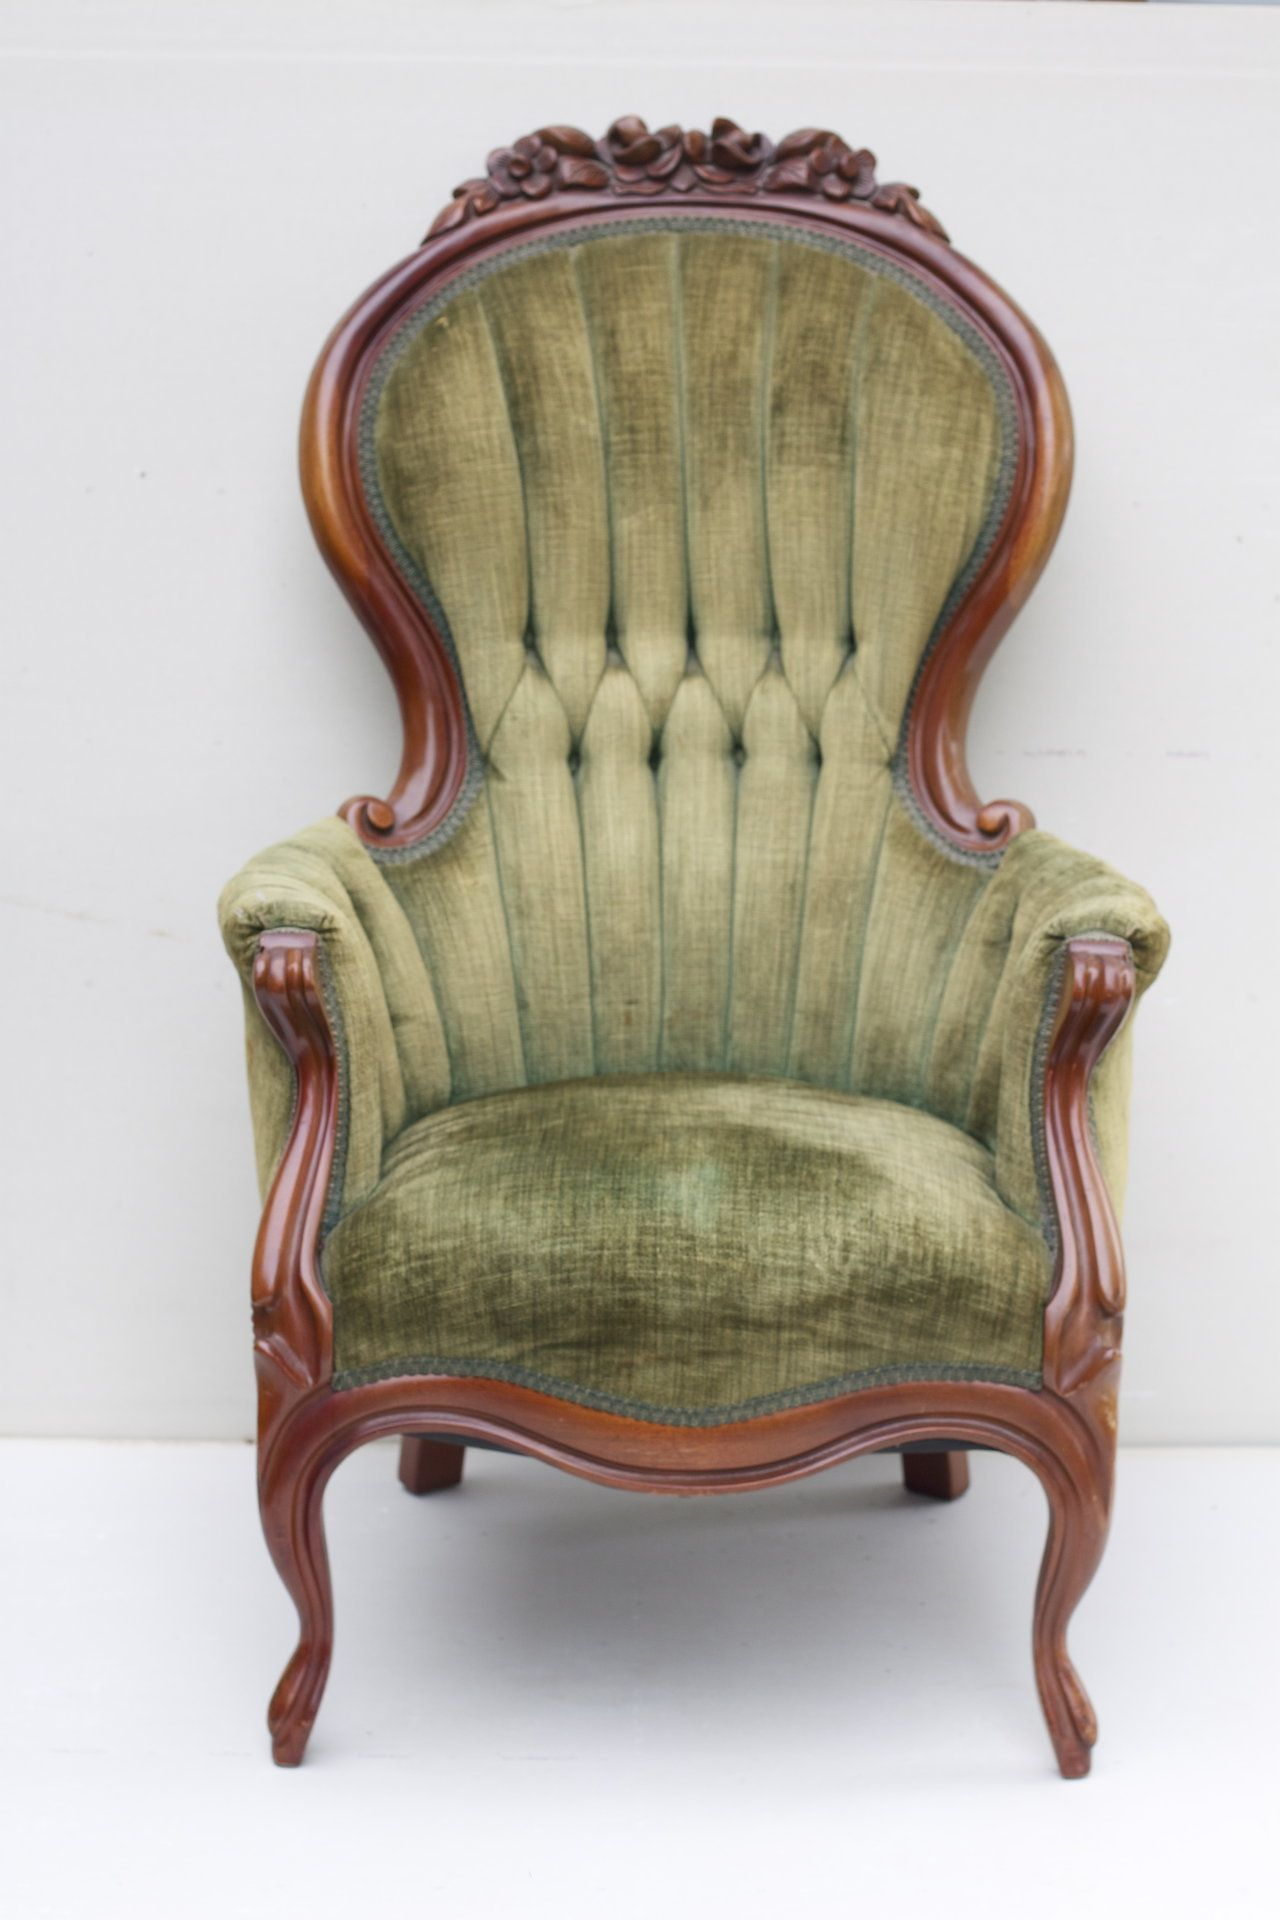 High back antique chairs - Vintage Chair With Tufted Sage Green Chenille Upholstery And Cherry Wood Frame Description From Adorefolklore